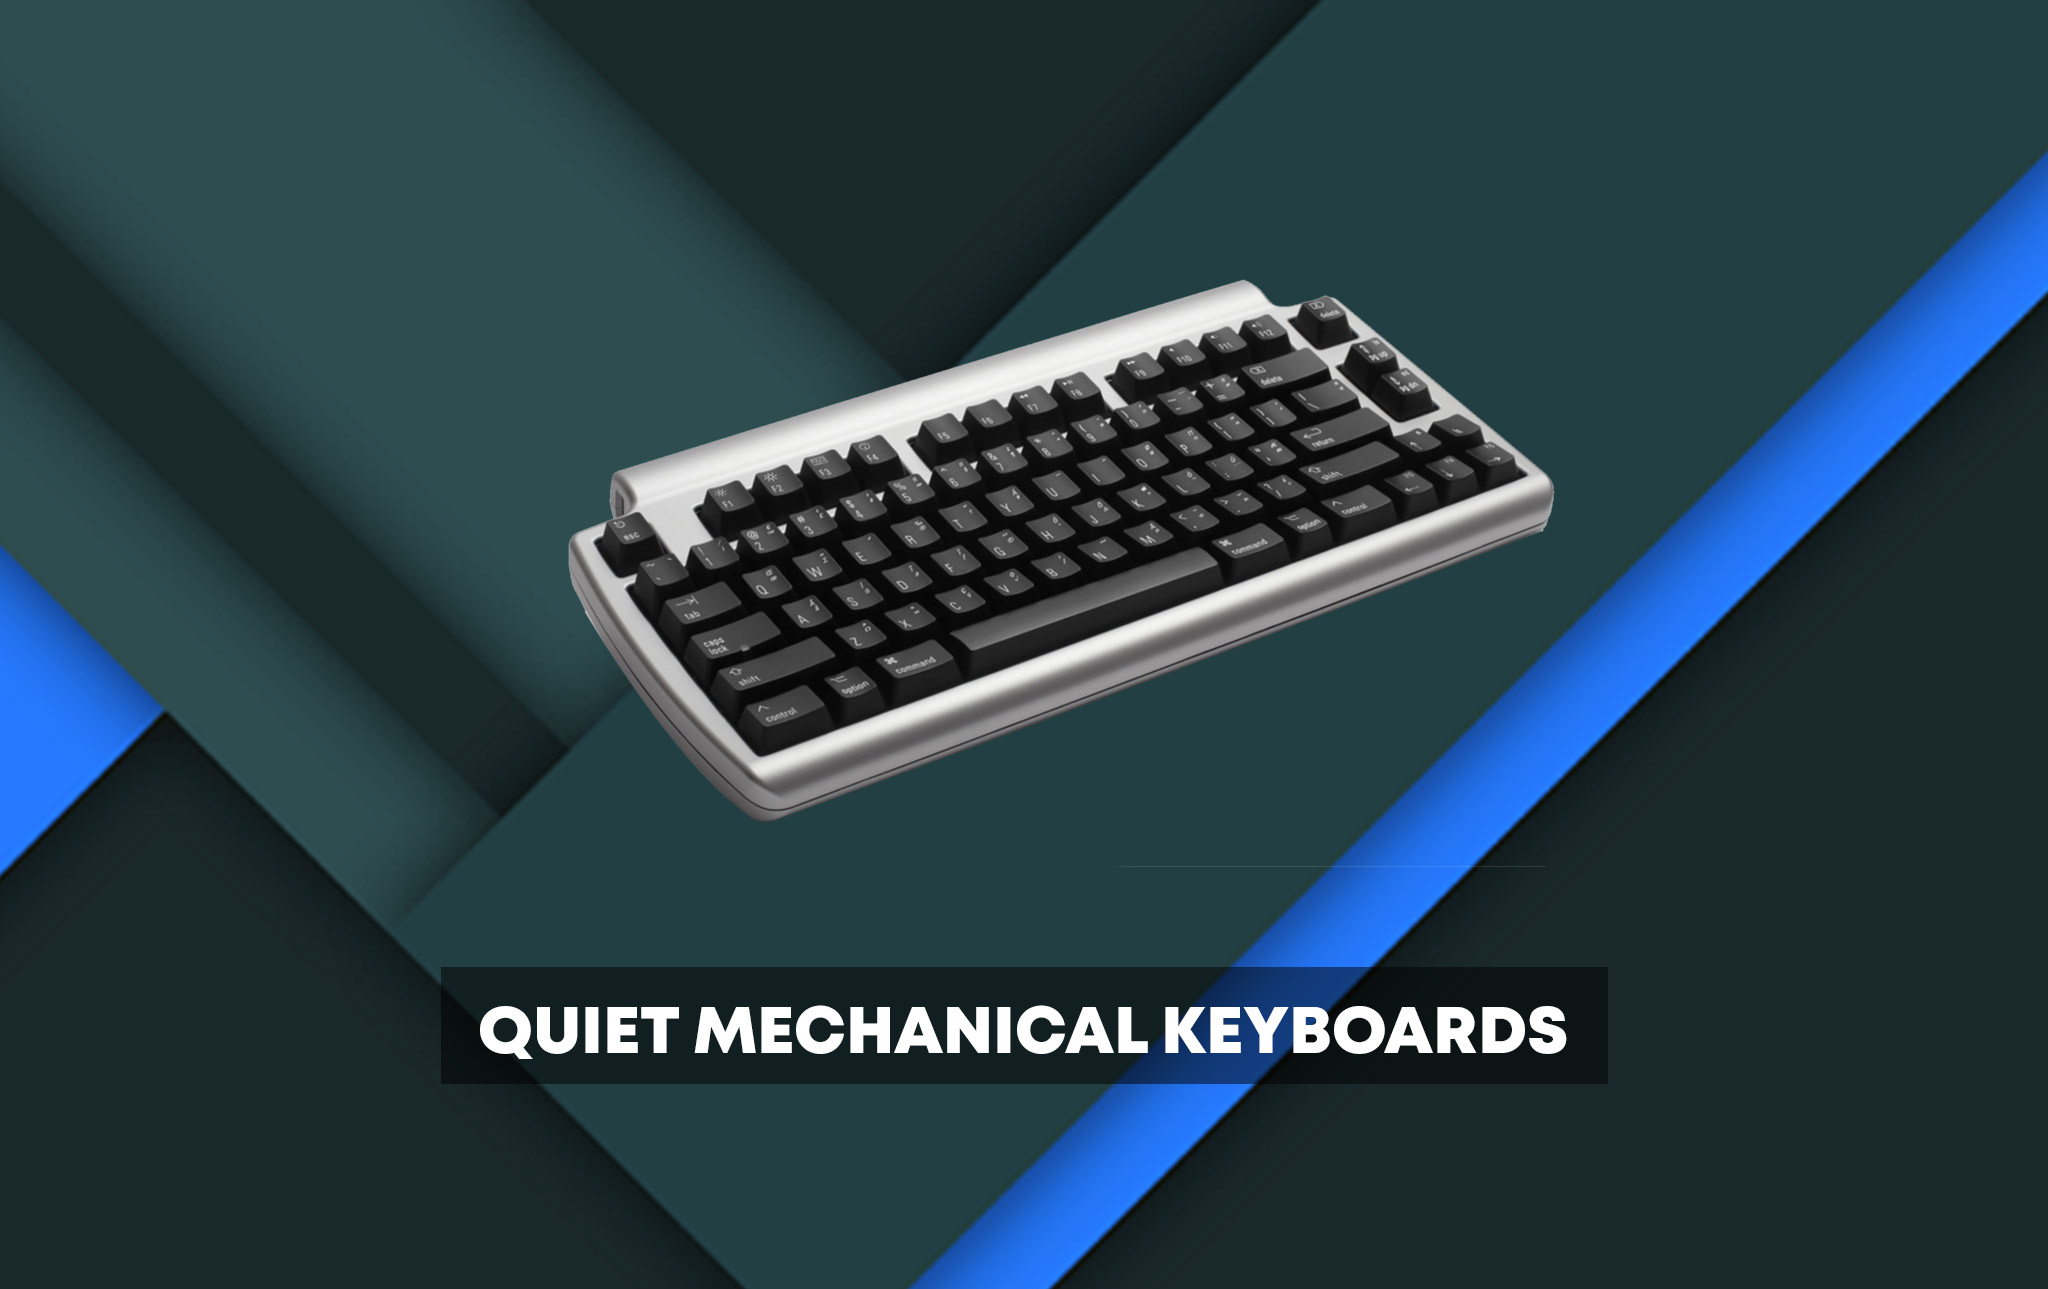 80365ab8fab 10 Quiet Mechanical Keyboards: The Buyer's Guide (2019)